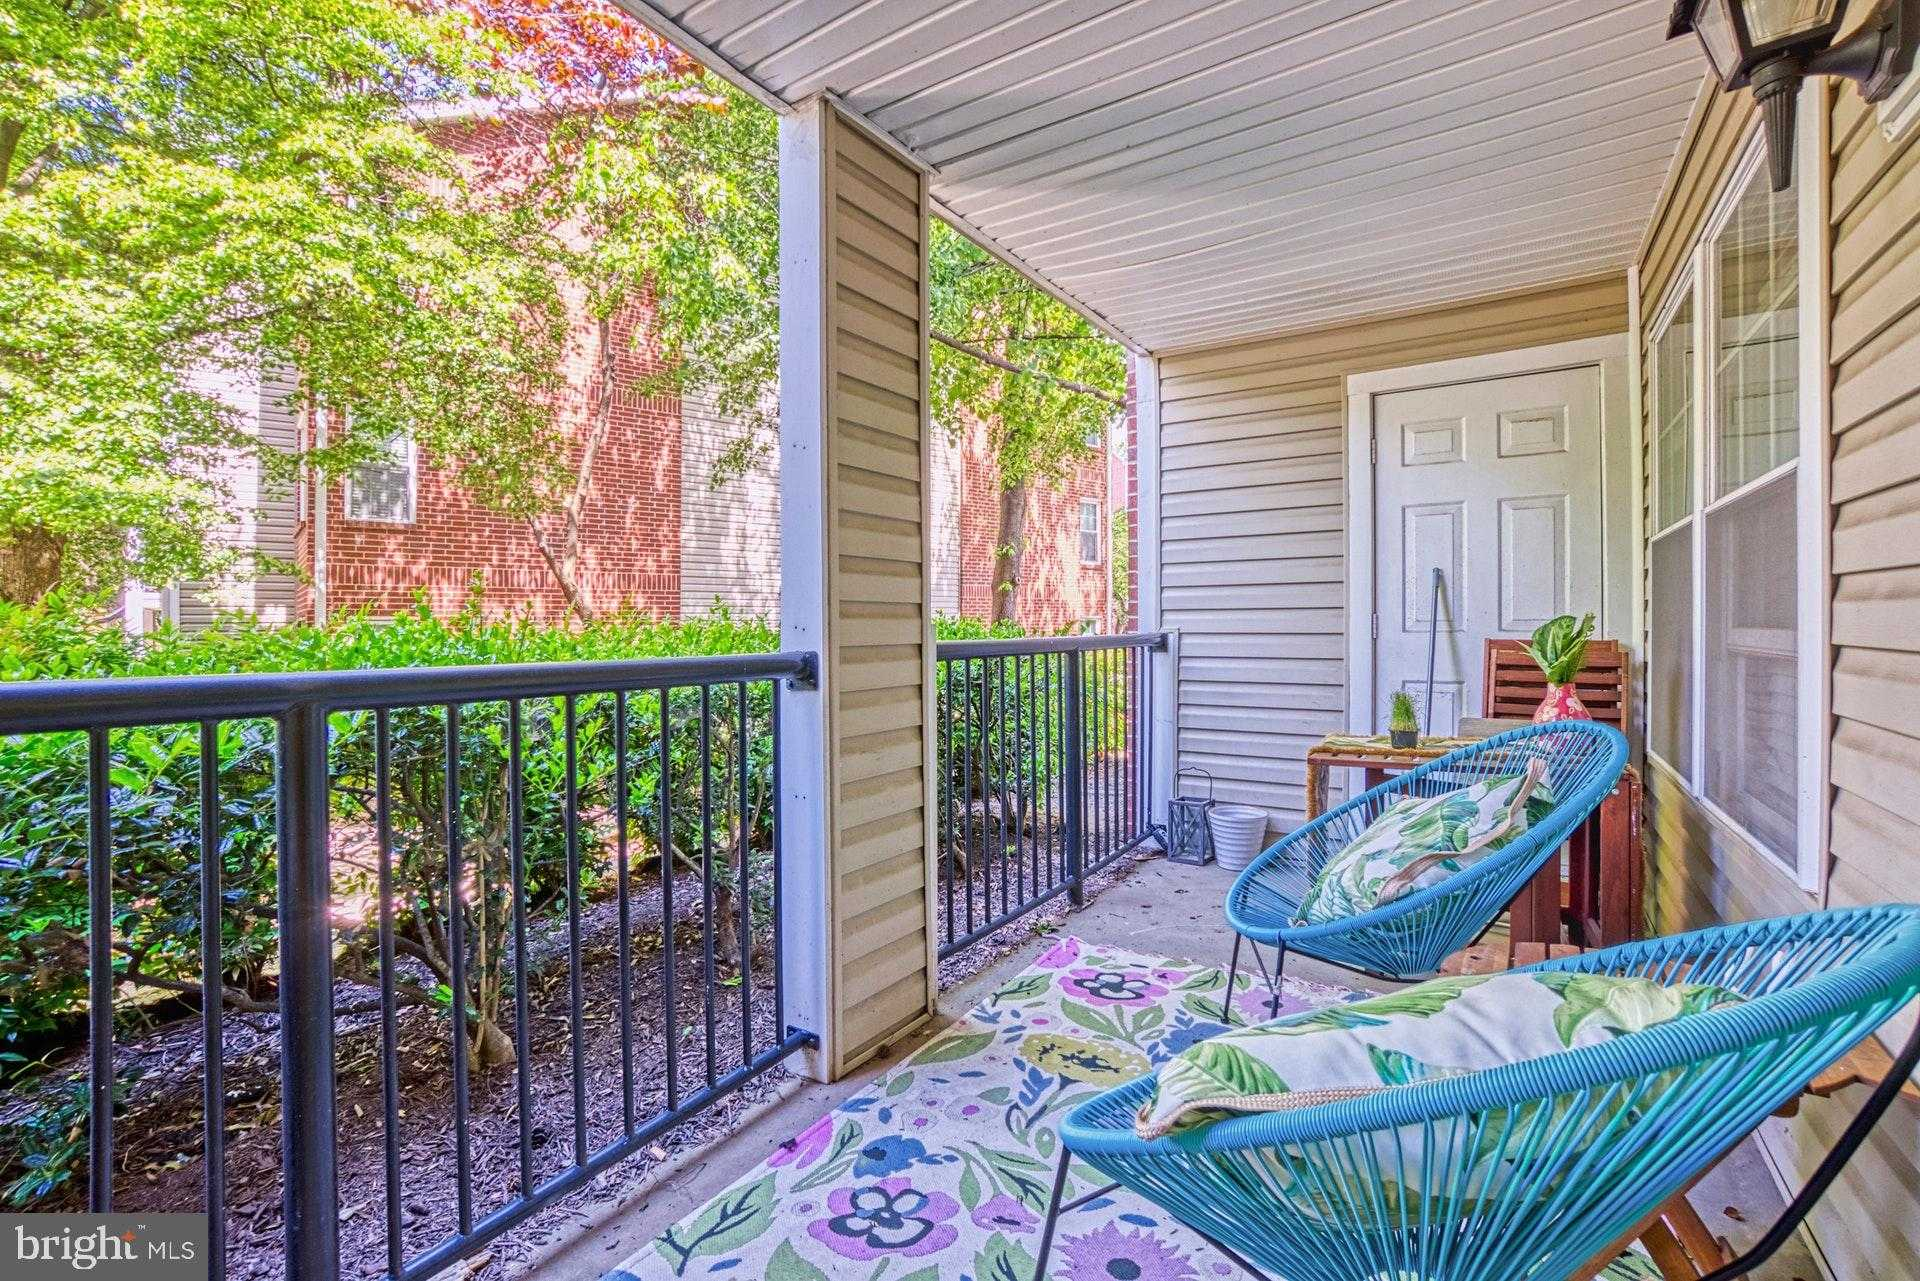 $1,650 - 1Br/1Ba -  for Sale in Pointe At Park Center, Alexandria